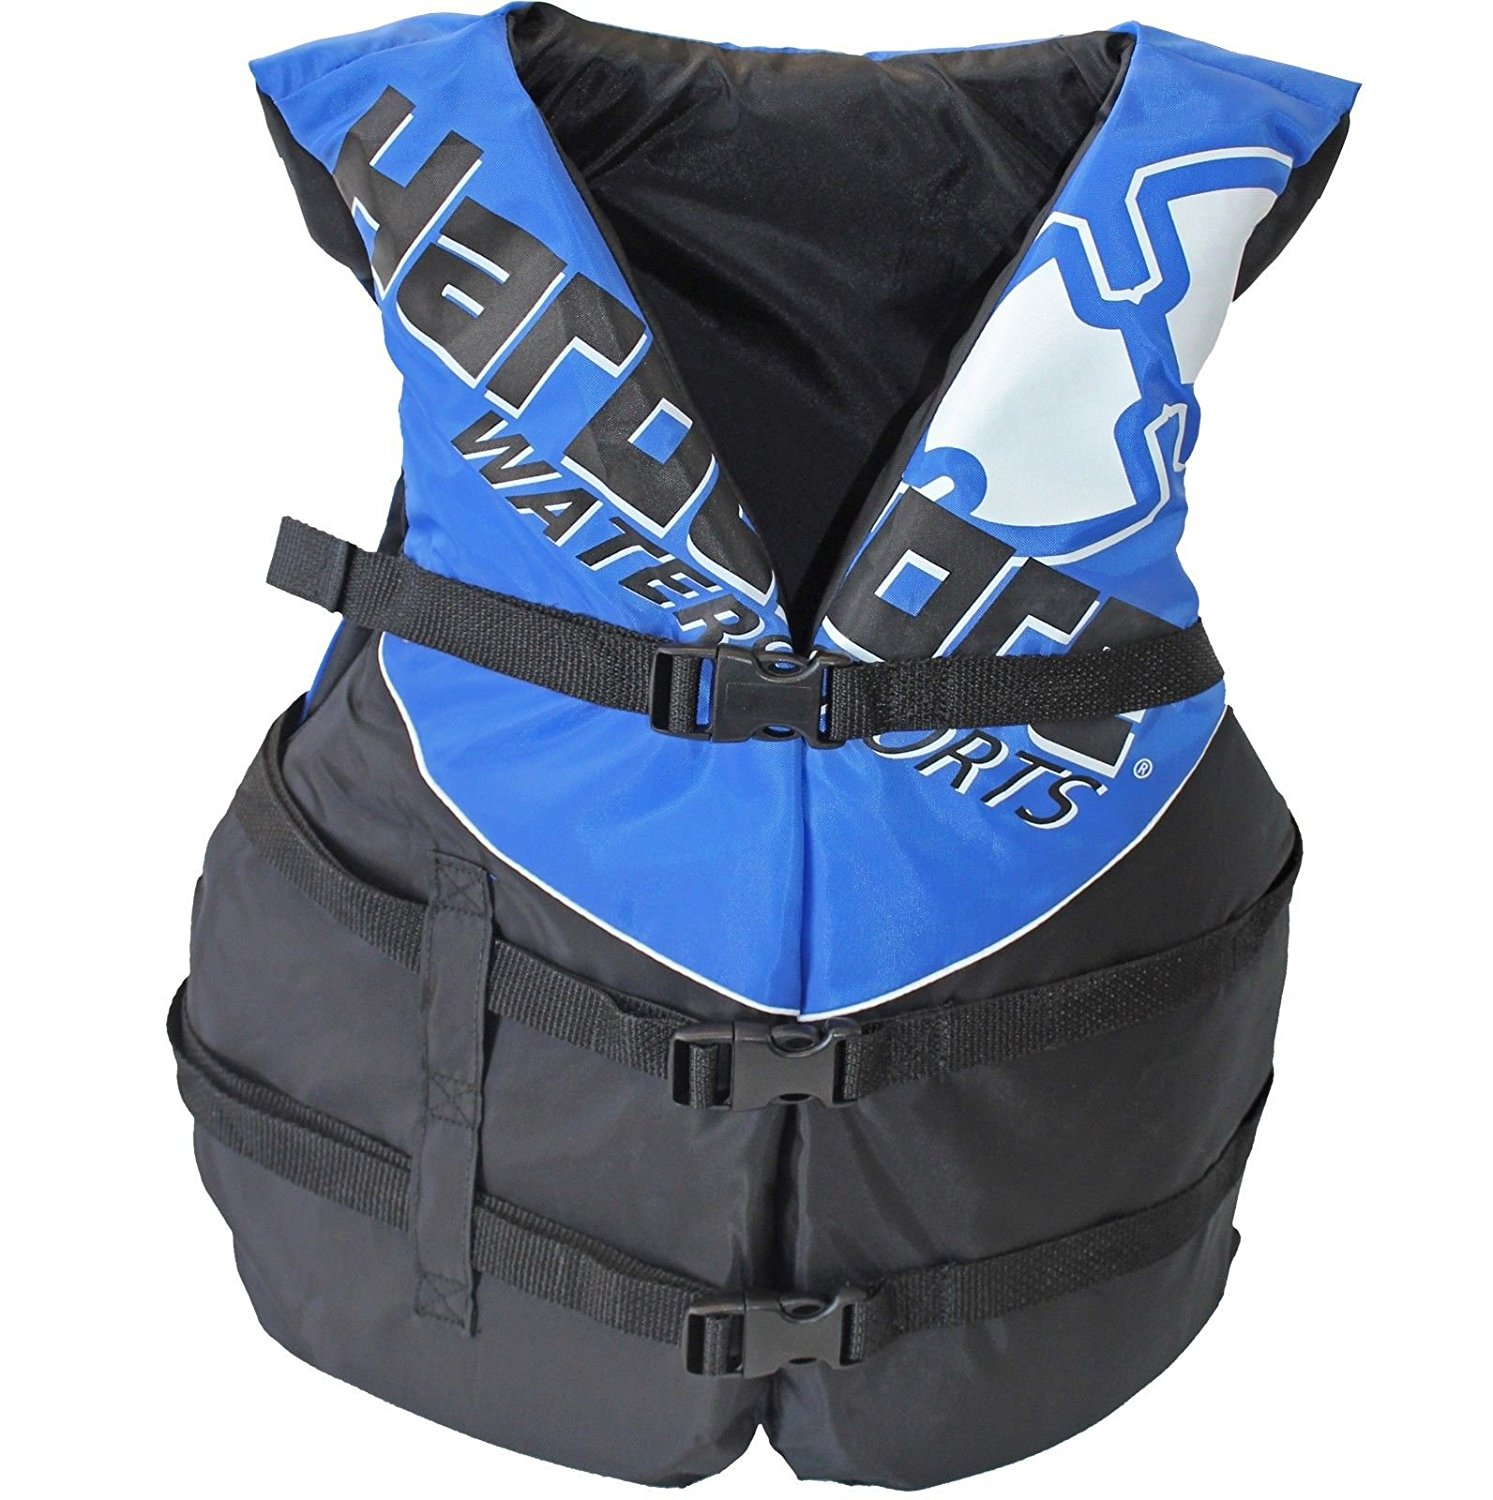 Life Jacket Vests For The Entire Family US Coast Guard approved Type III by Hardcore Water Sports